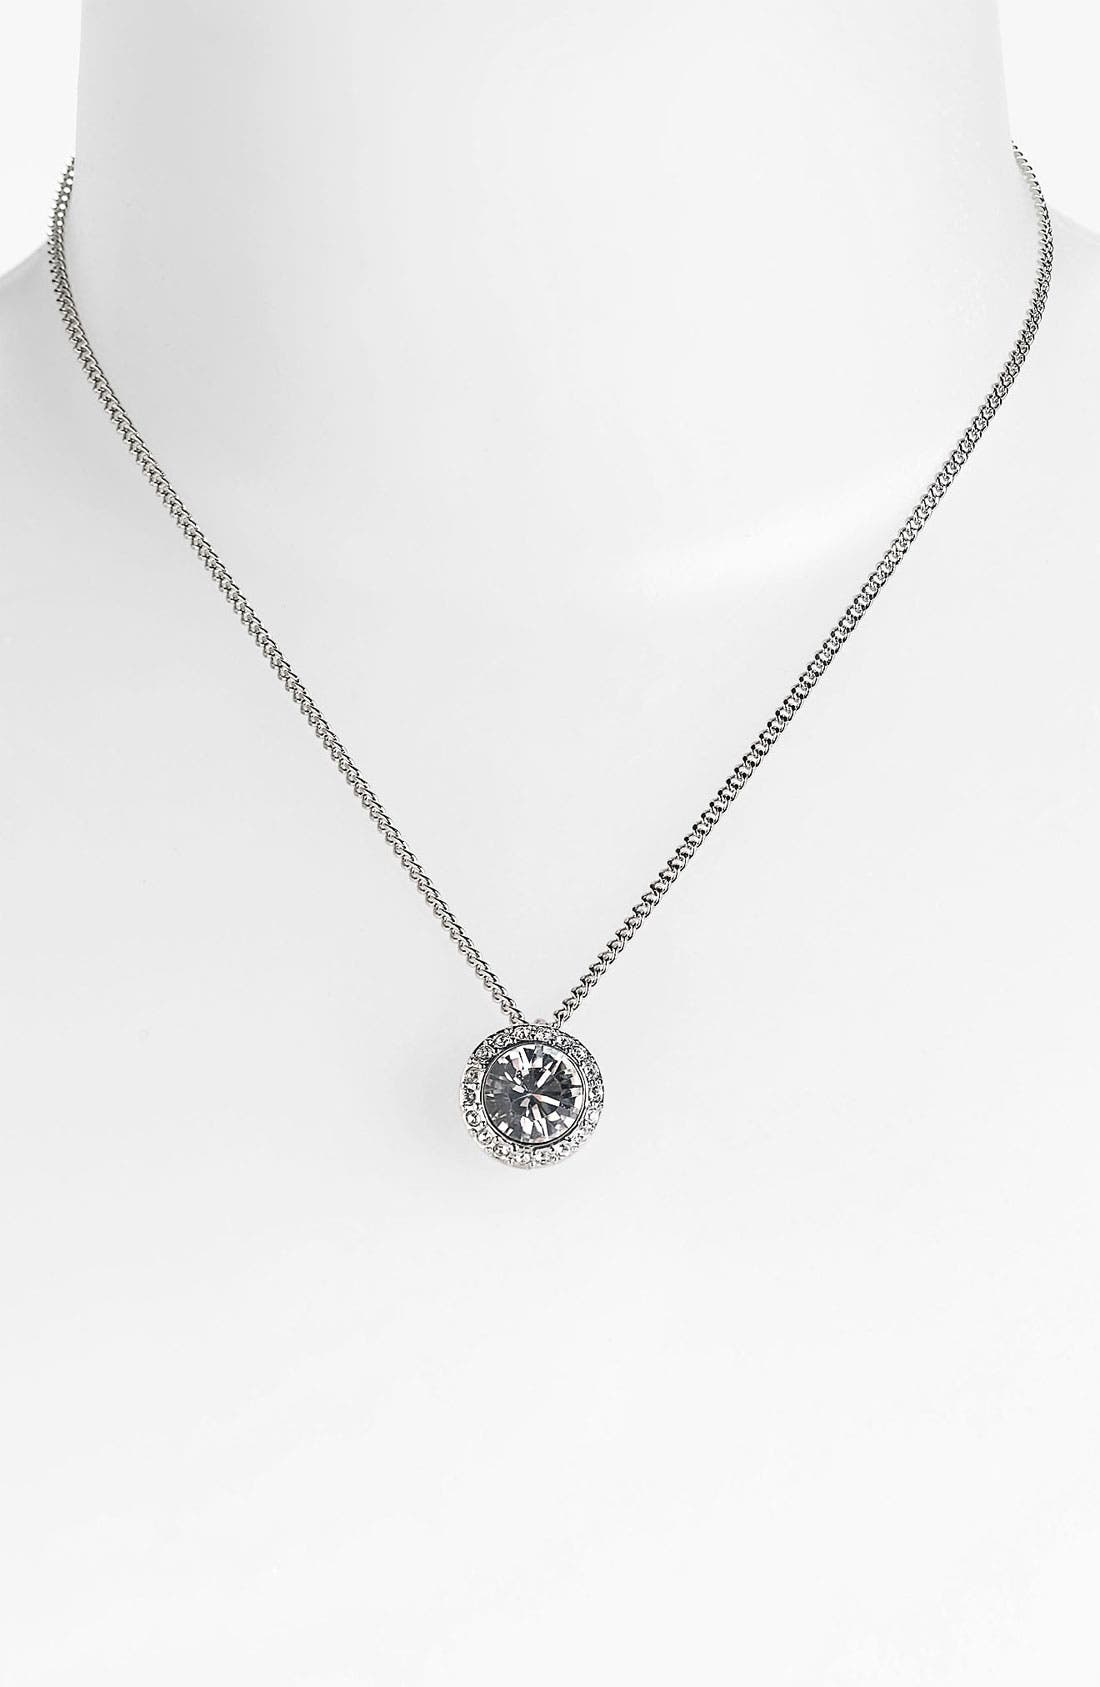 Main Image - Givenchy Pendant Necklace